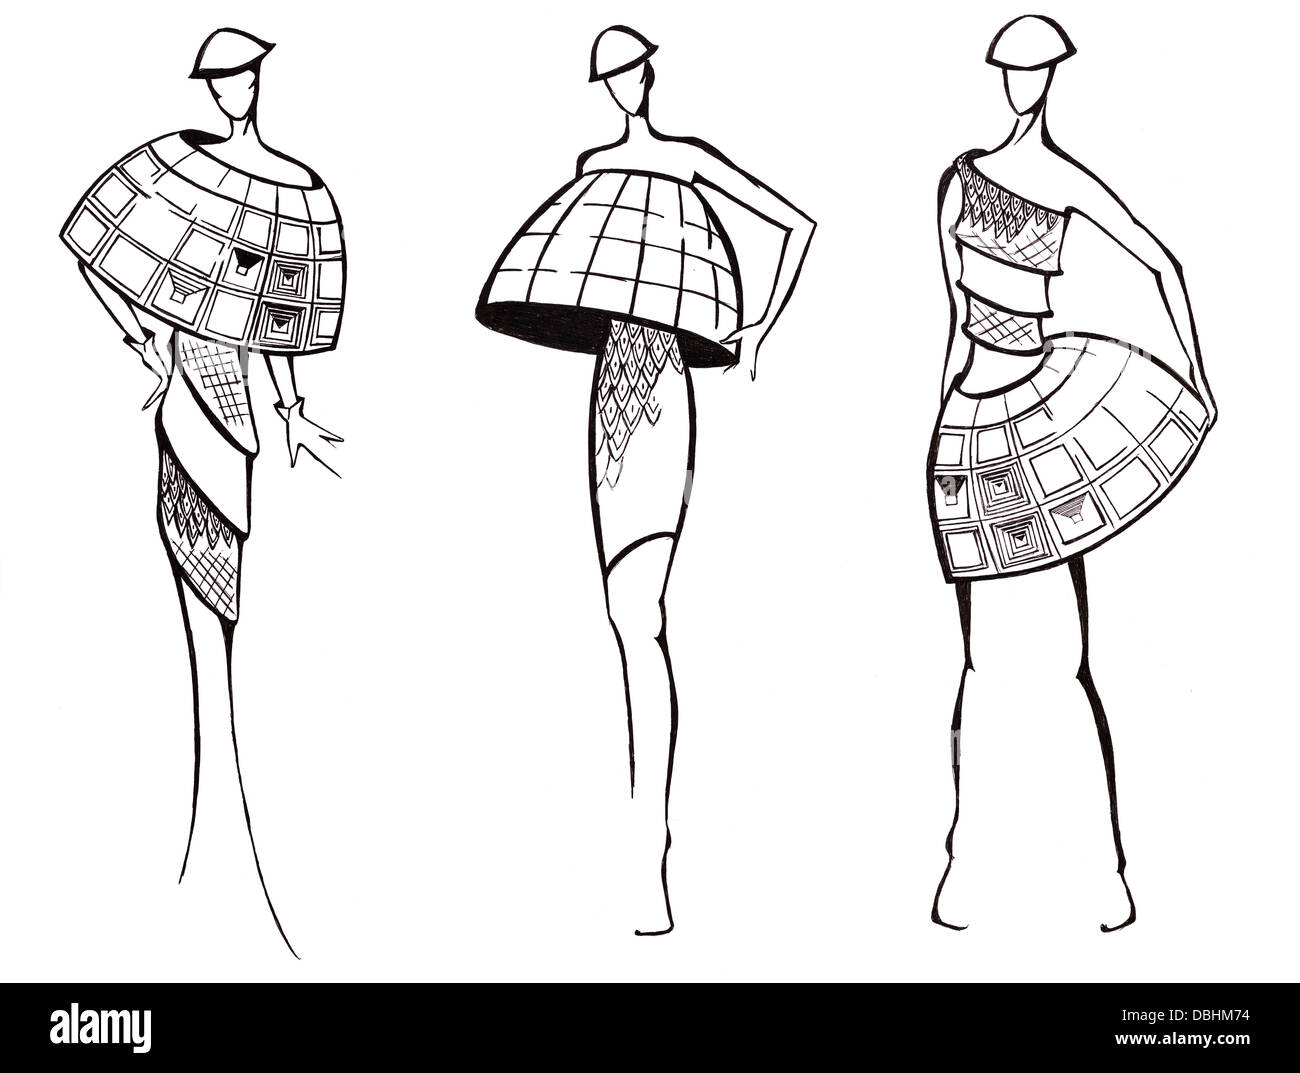 sketch of fashion model - design of dresses based on architecture dome - Stock Image